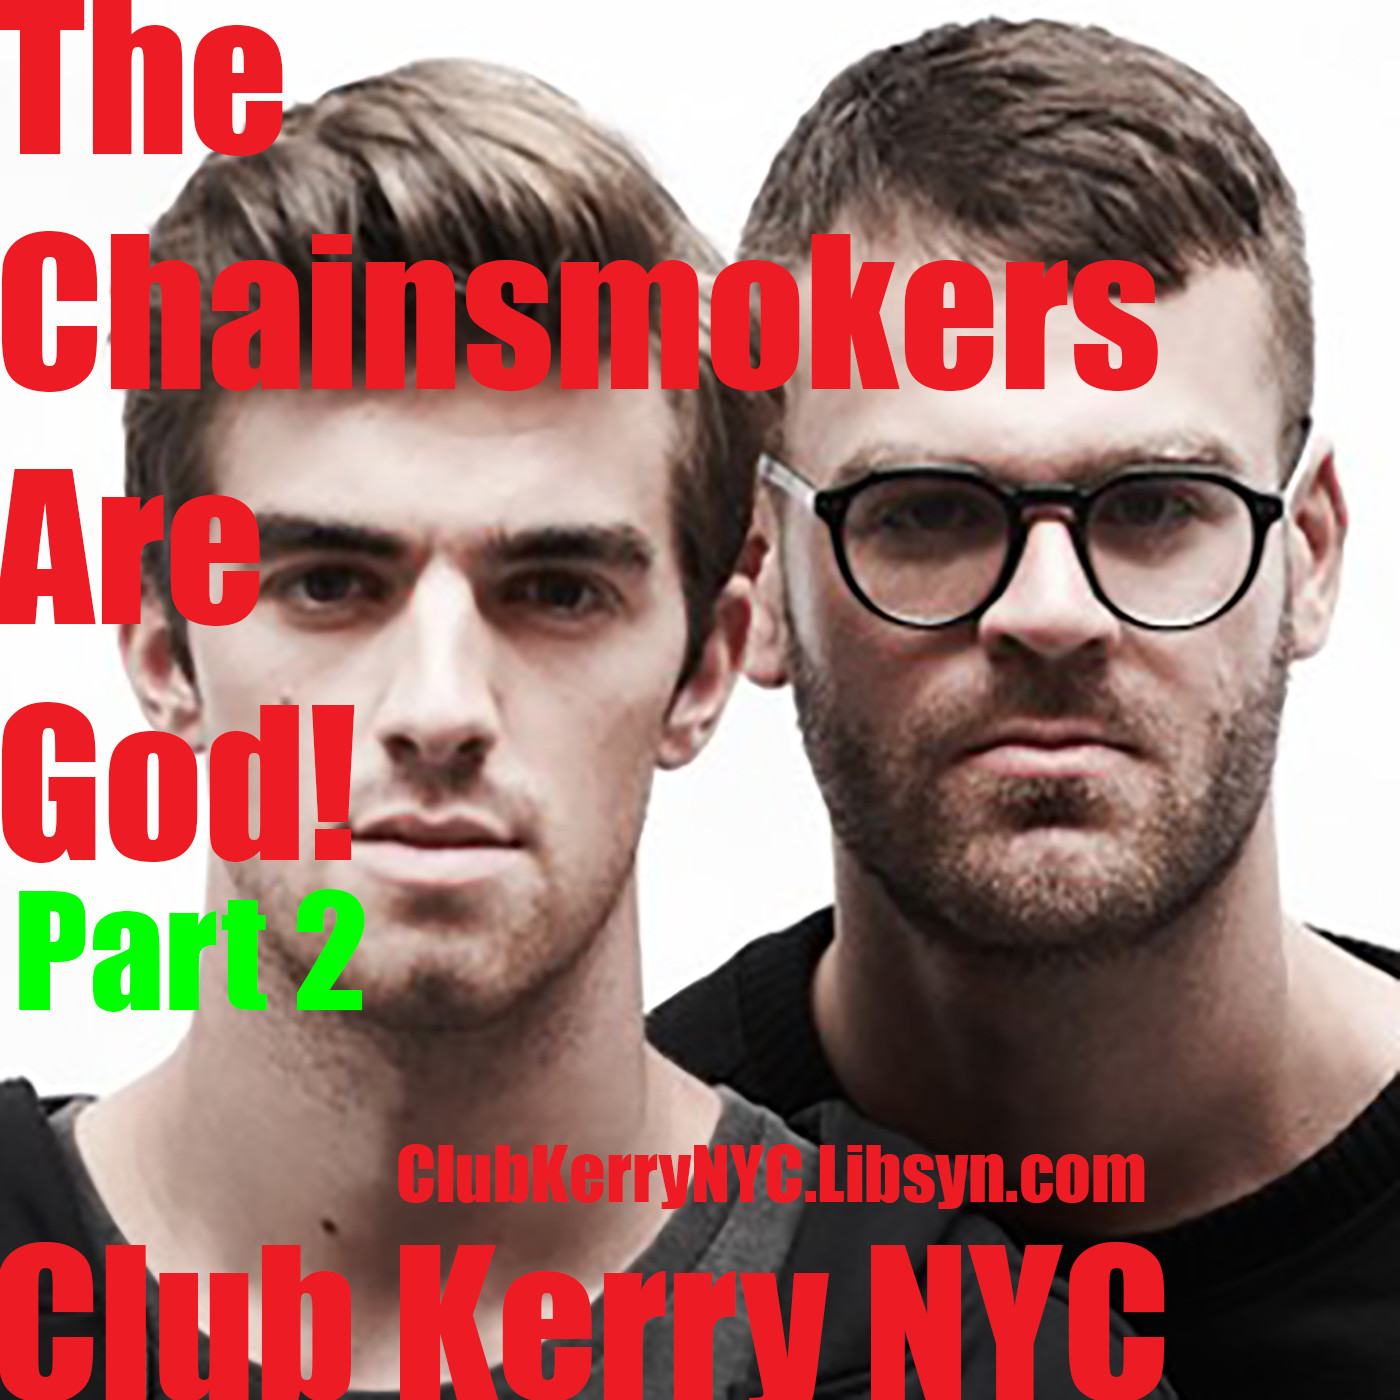 Chainsmokers are God v.2 artwork